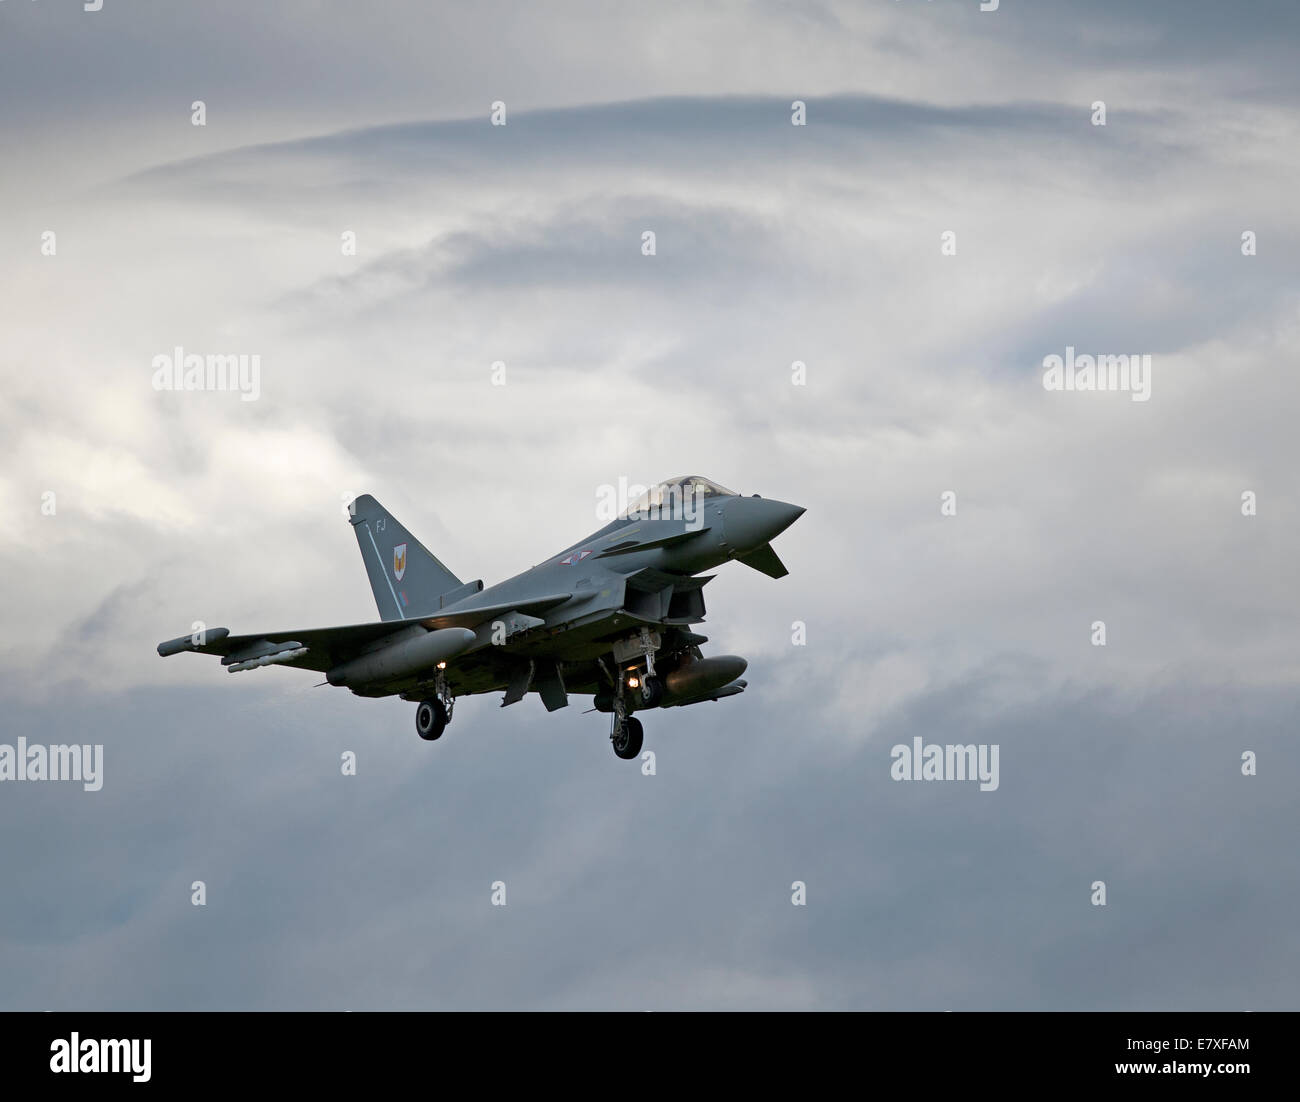 Retrurning to base 1 Squadron Eurofightr Typhoon FRG4 at RAF Lossiemouth, Moray.  SCO 9120 - Stock Image